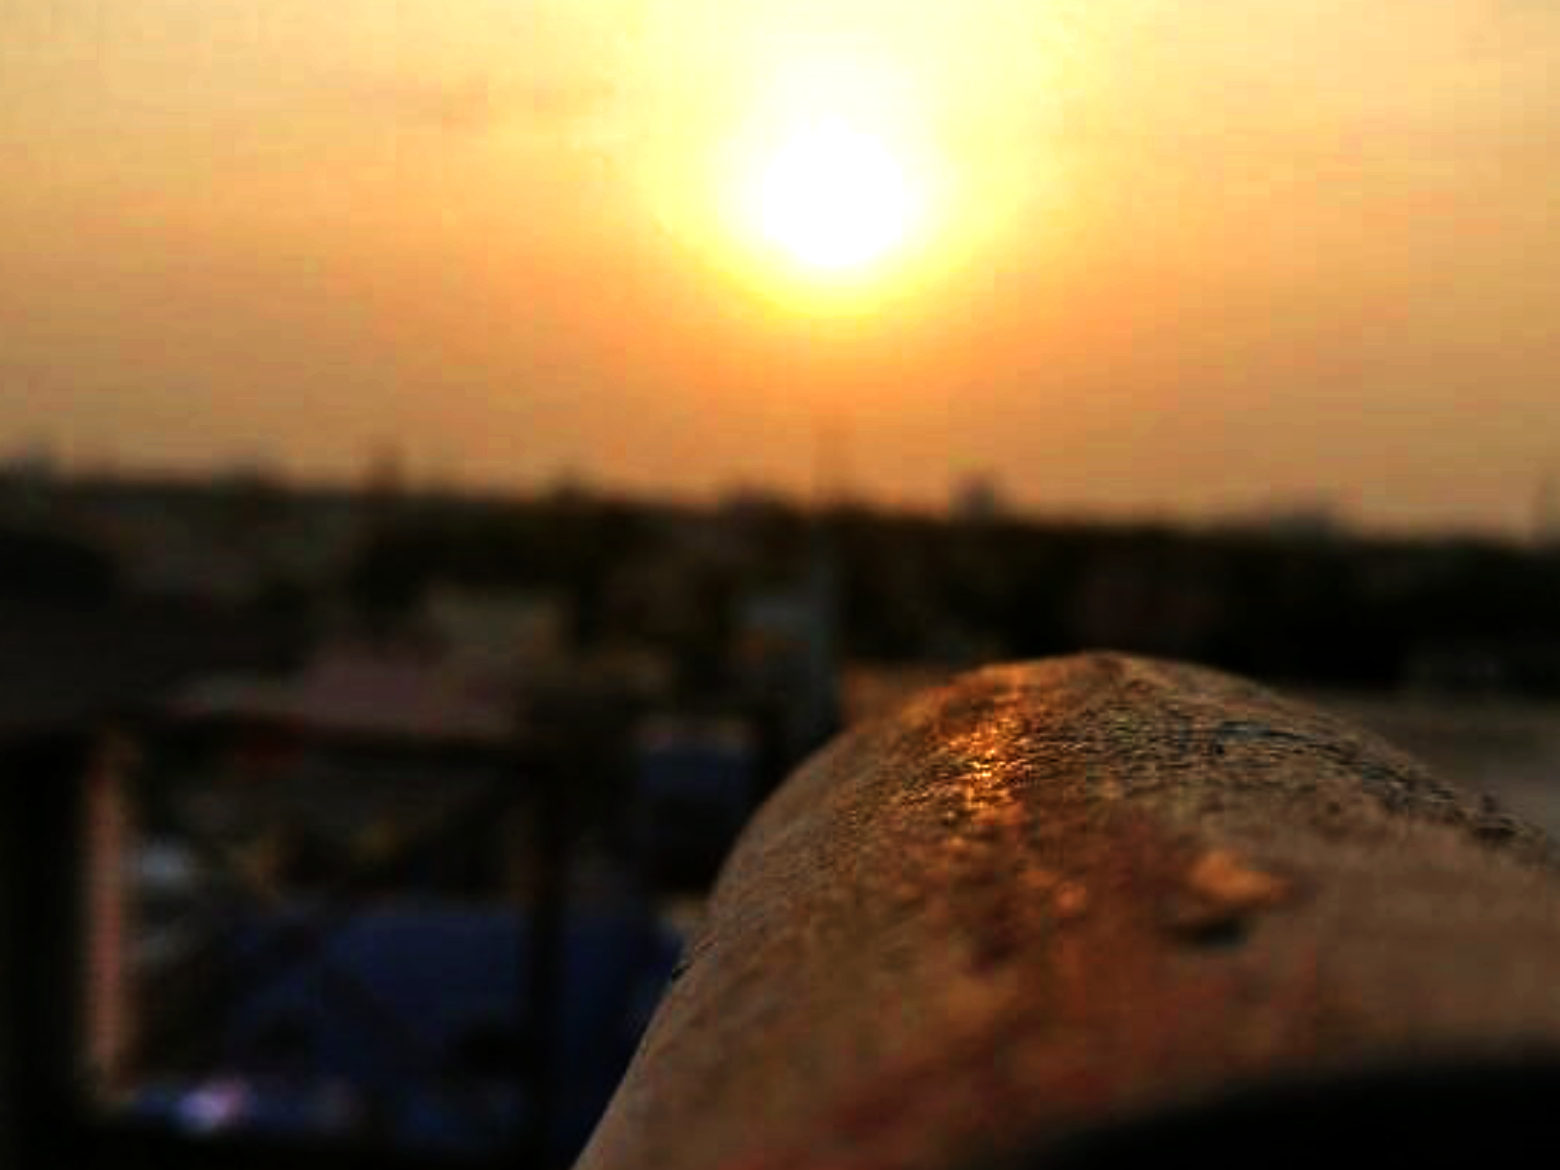 sunset captured